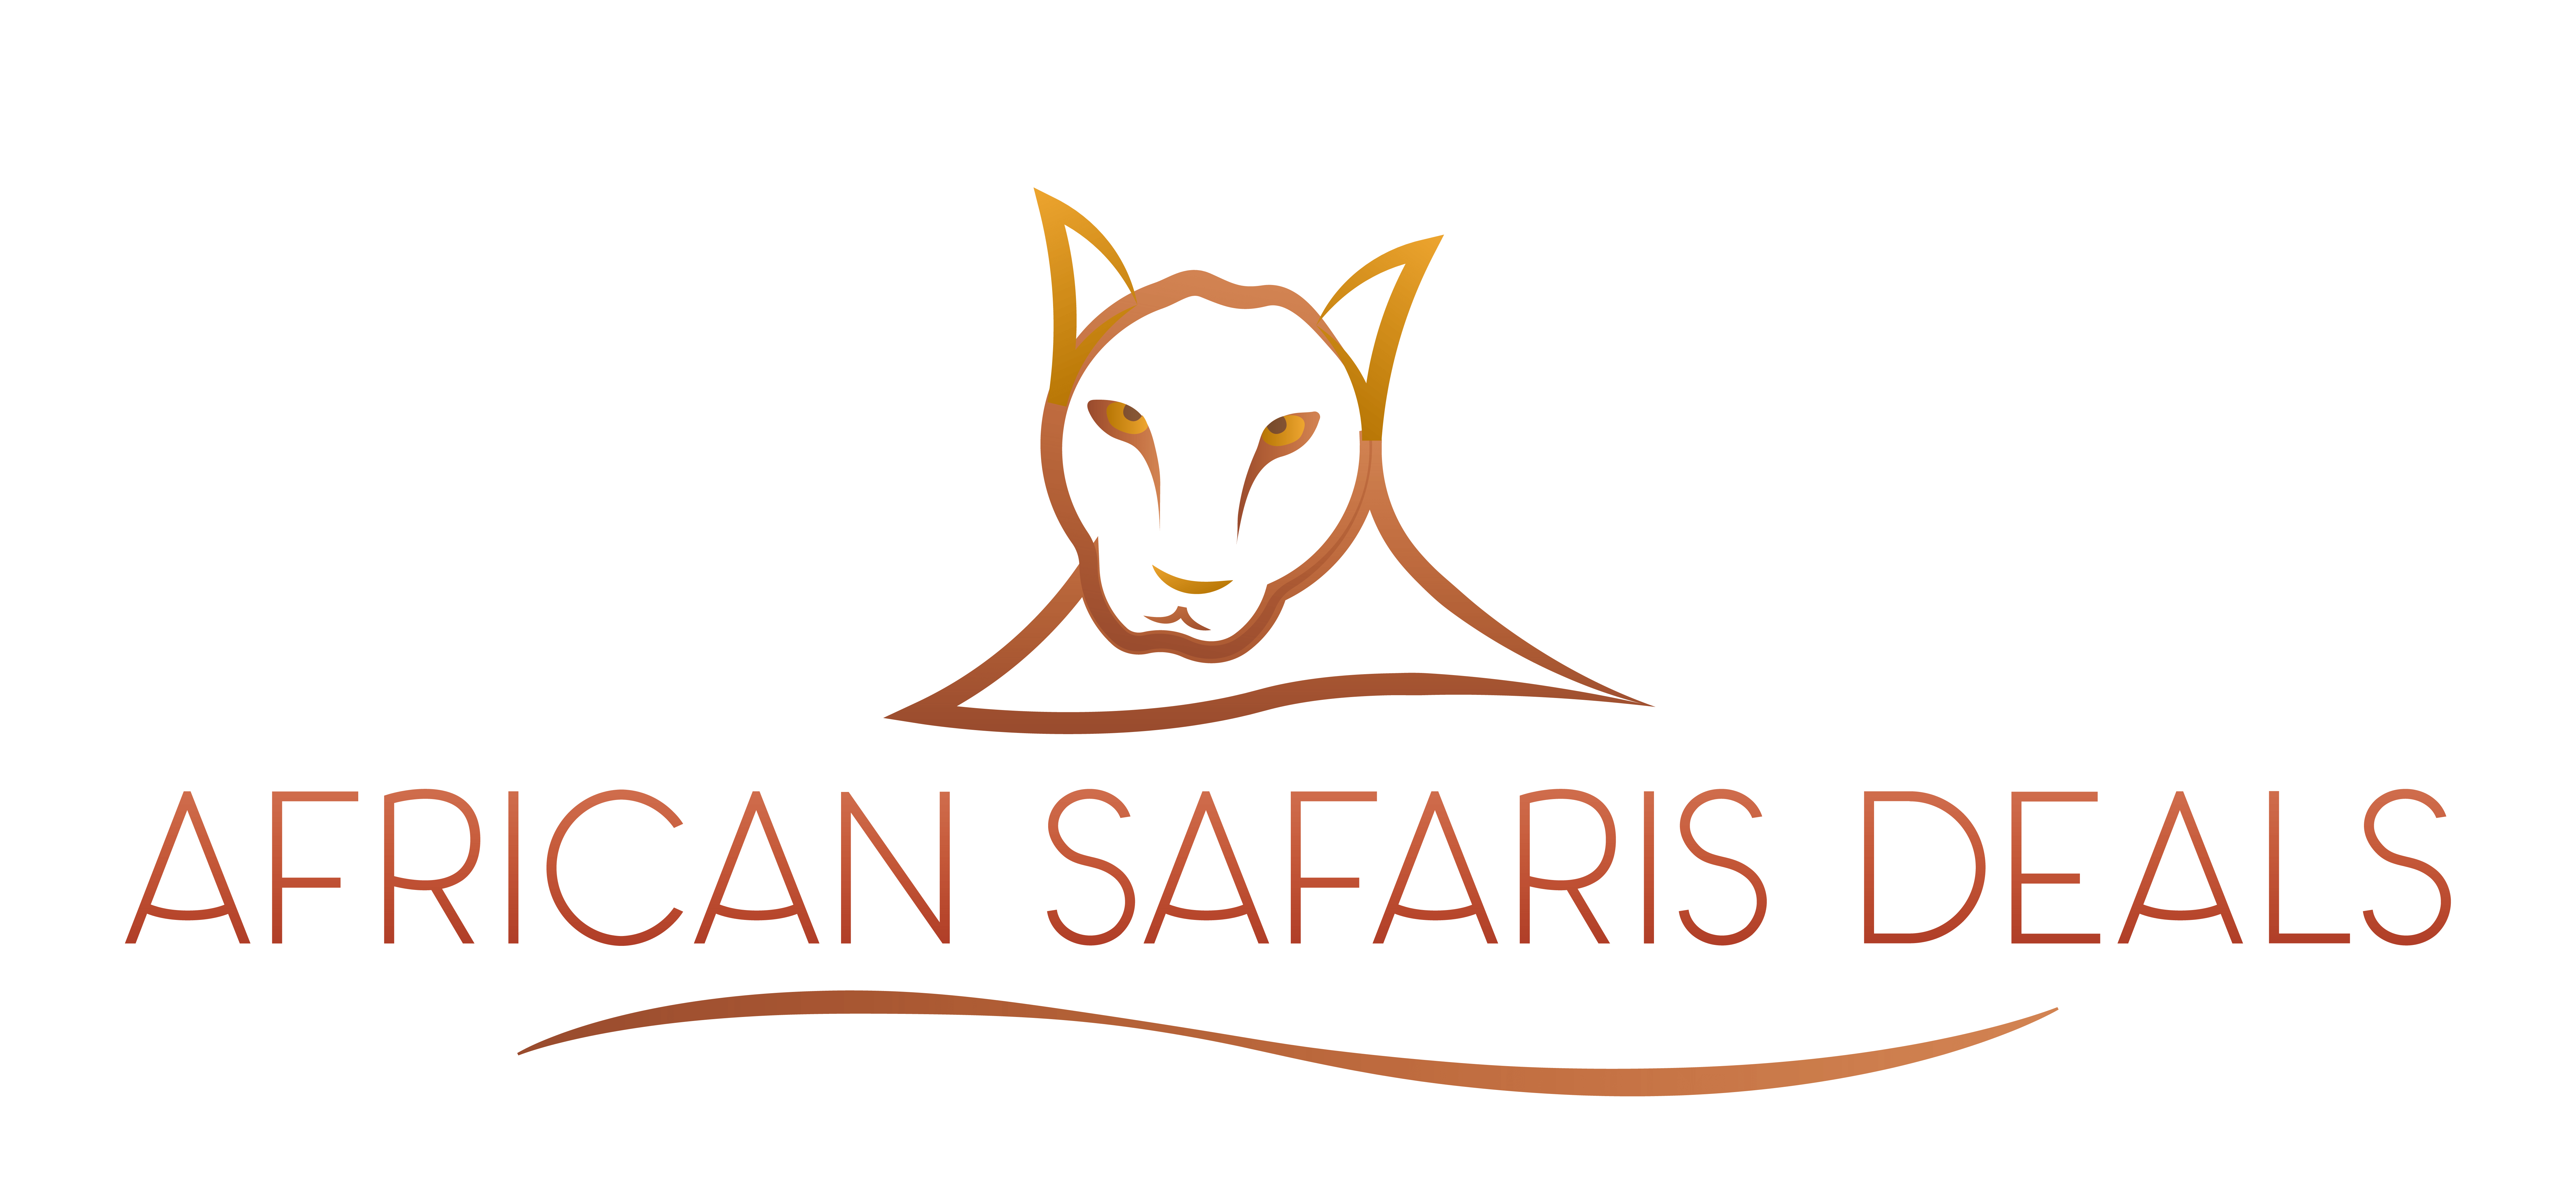 African Safaris Deals Logo